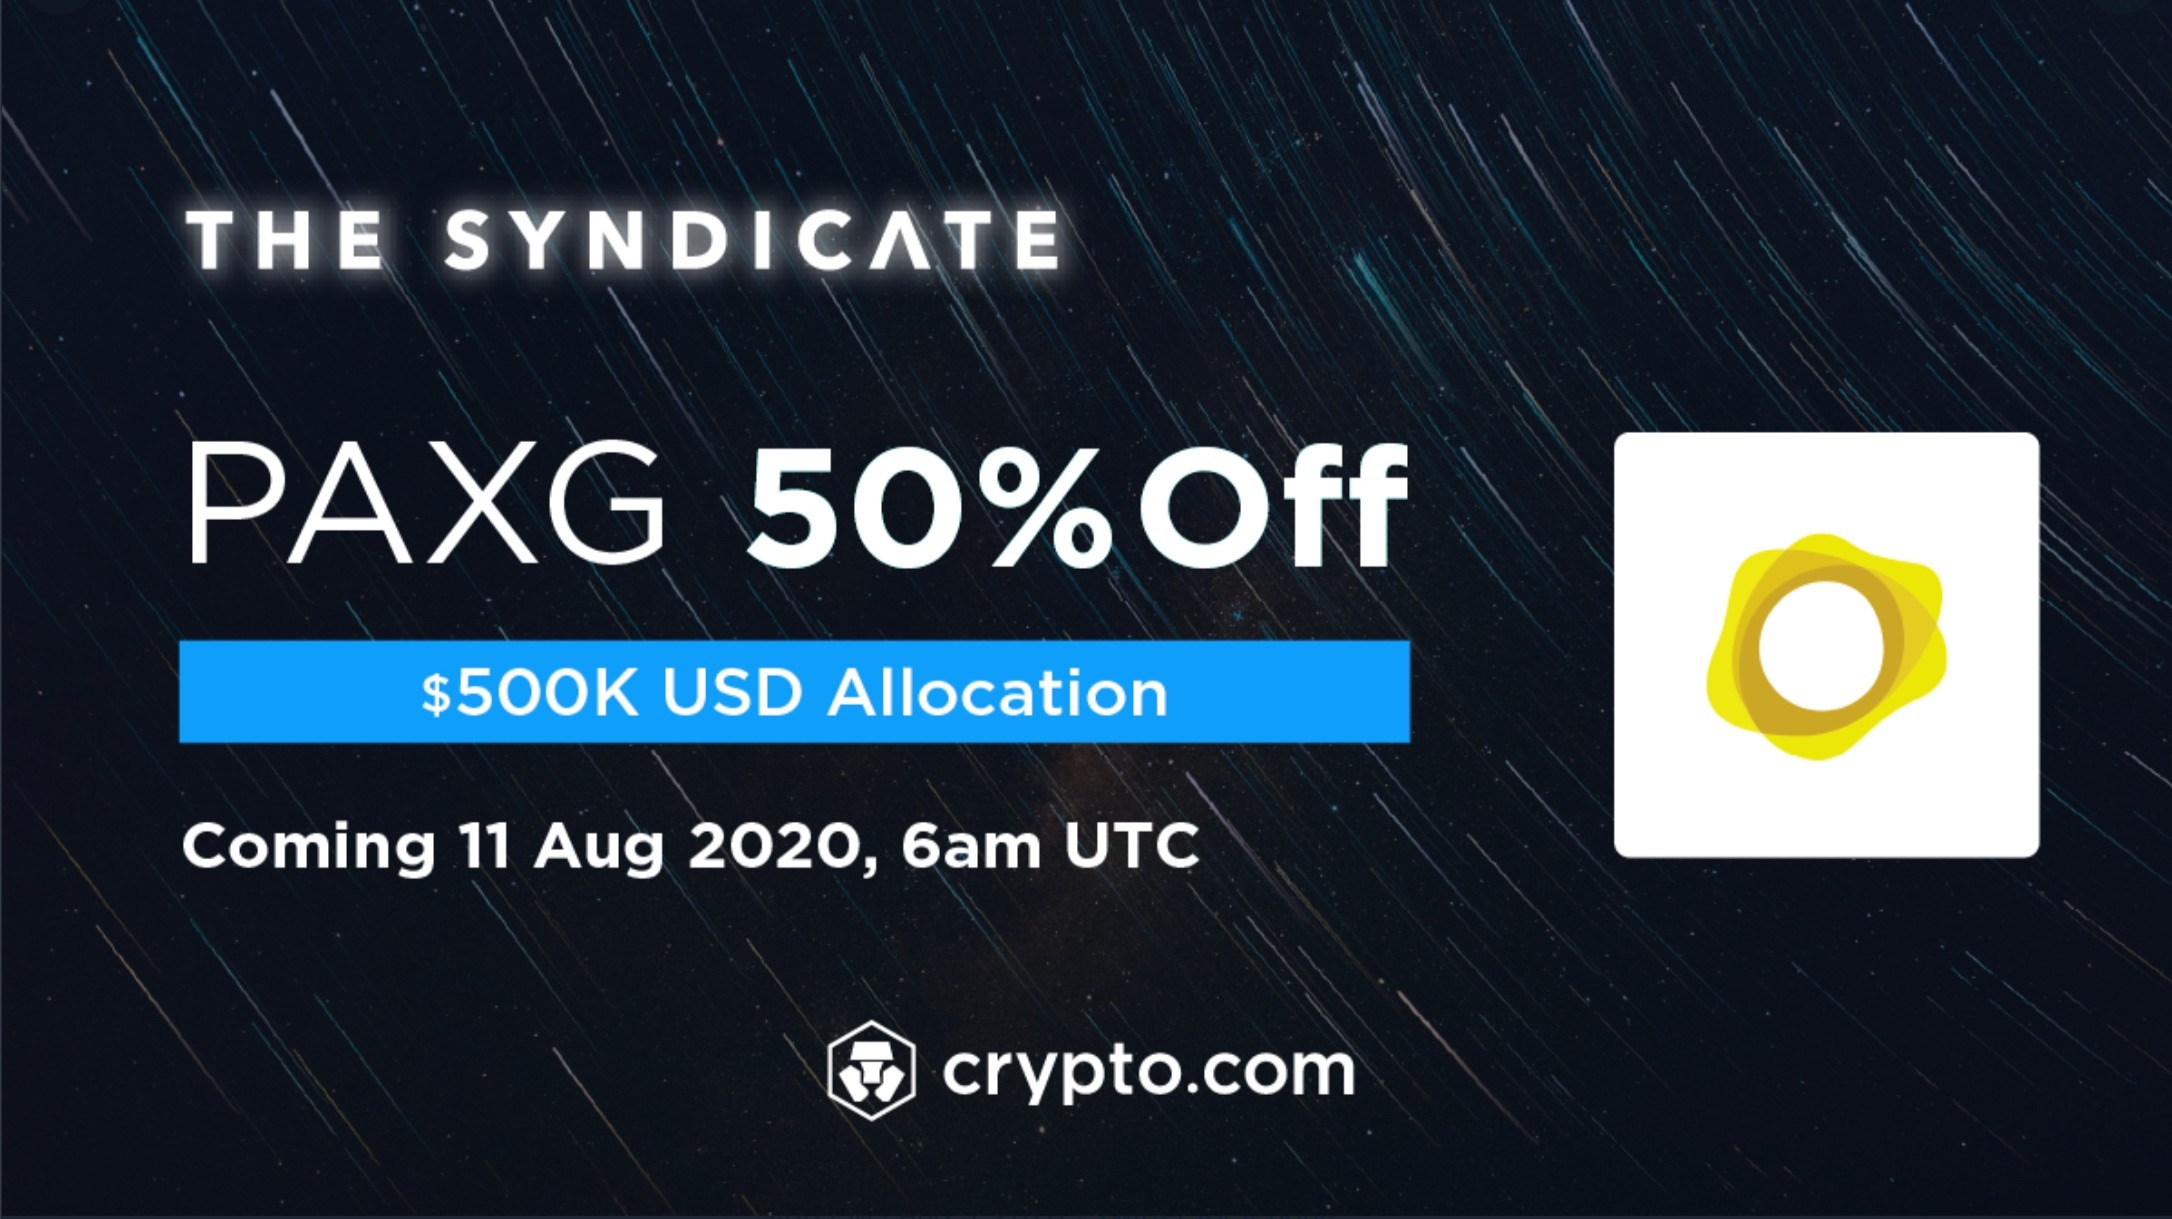 PAXG Syndicate Listing